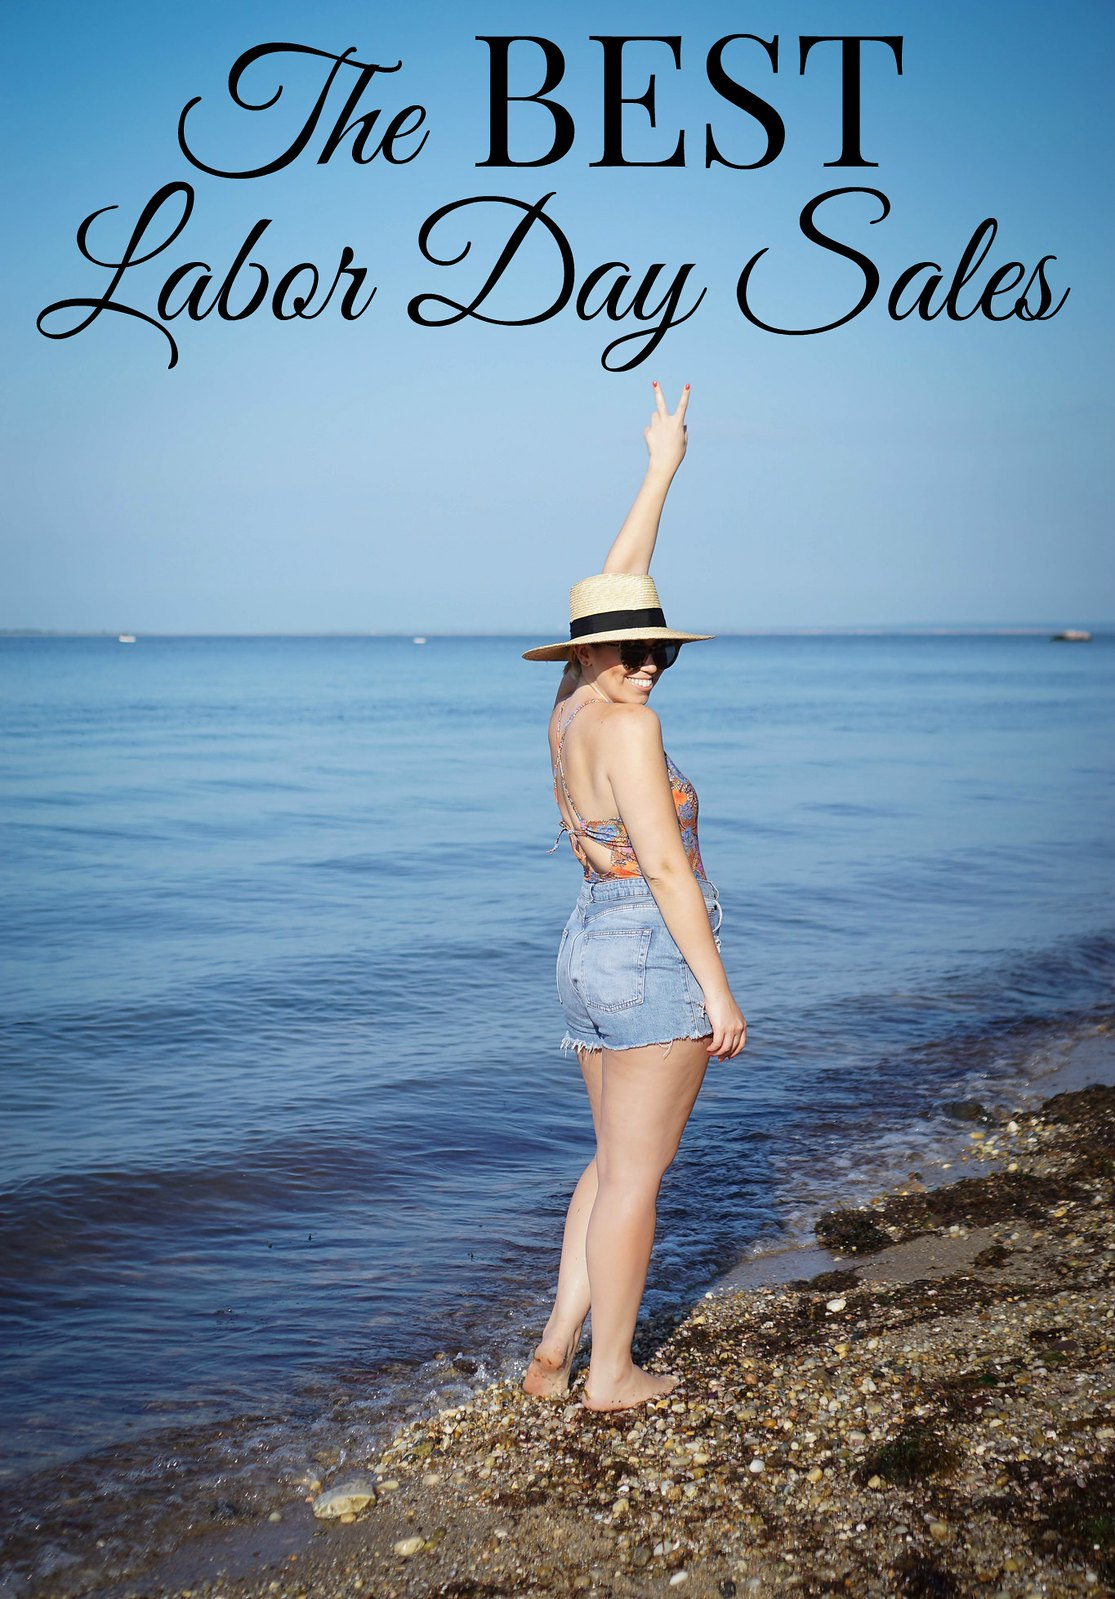 The Best Labor Day Sales 2017